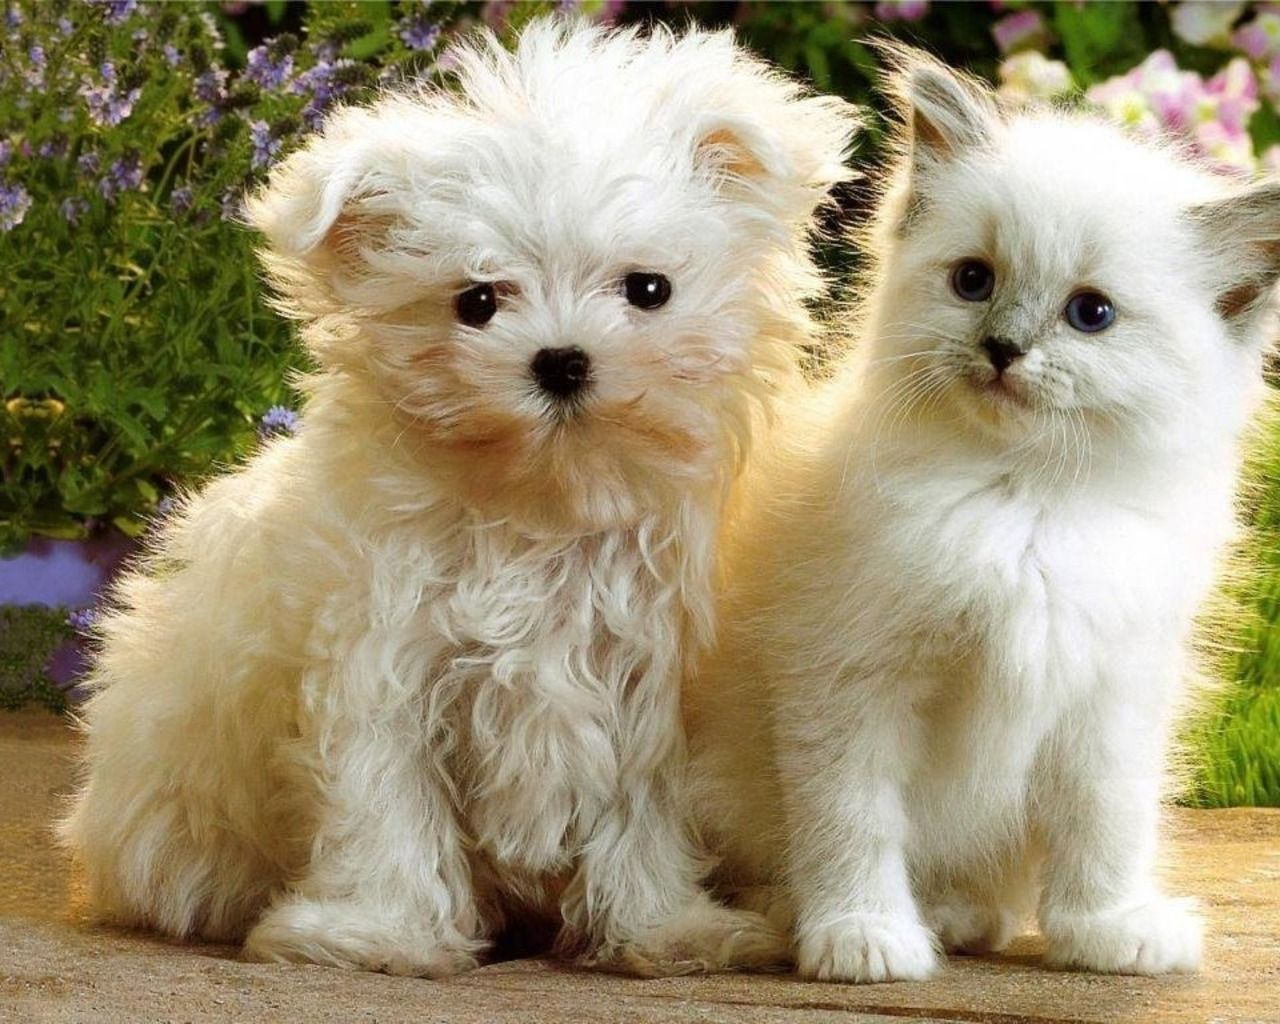 Sweet Babies Cute Puppies And Kittens Cute Cats And Dogs